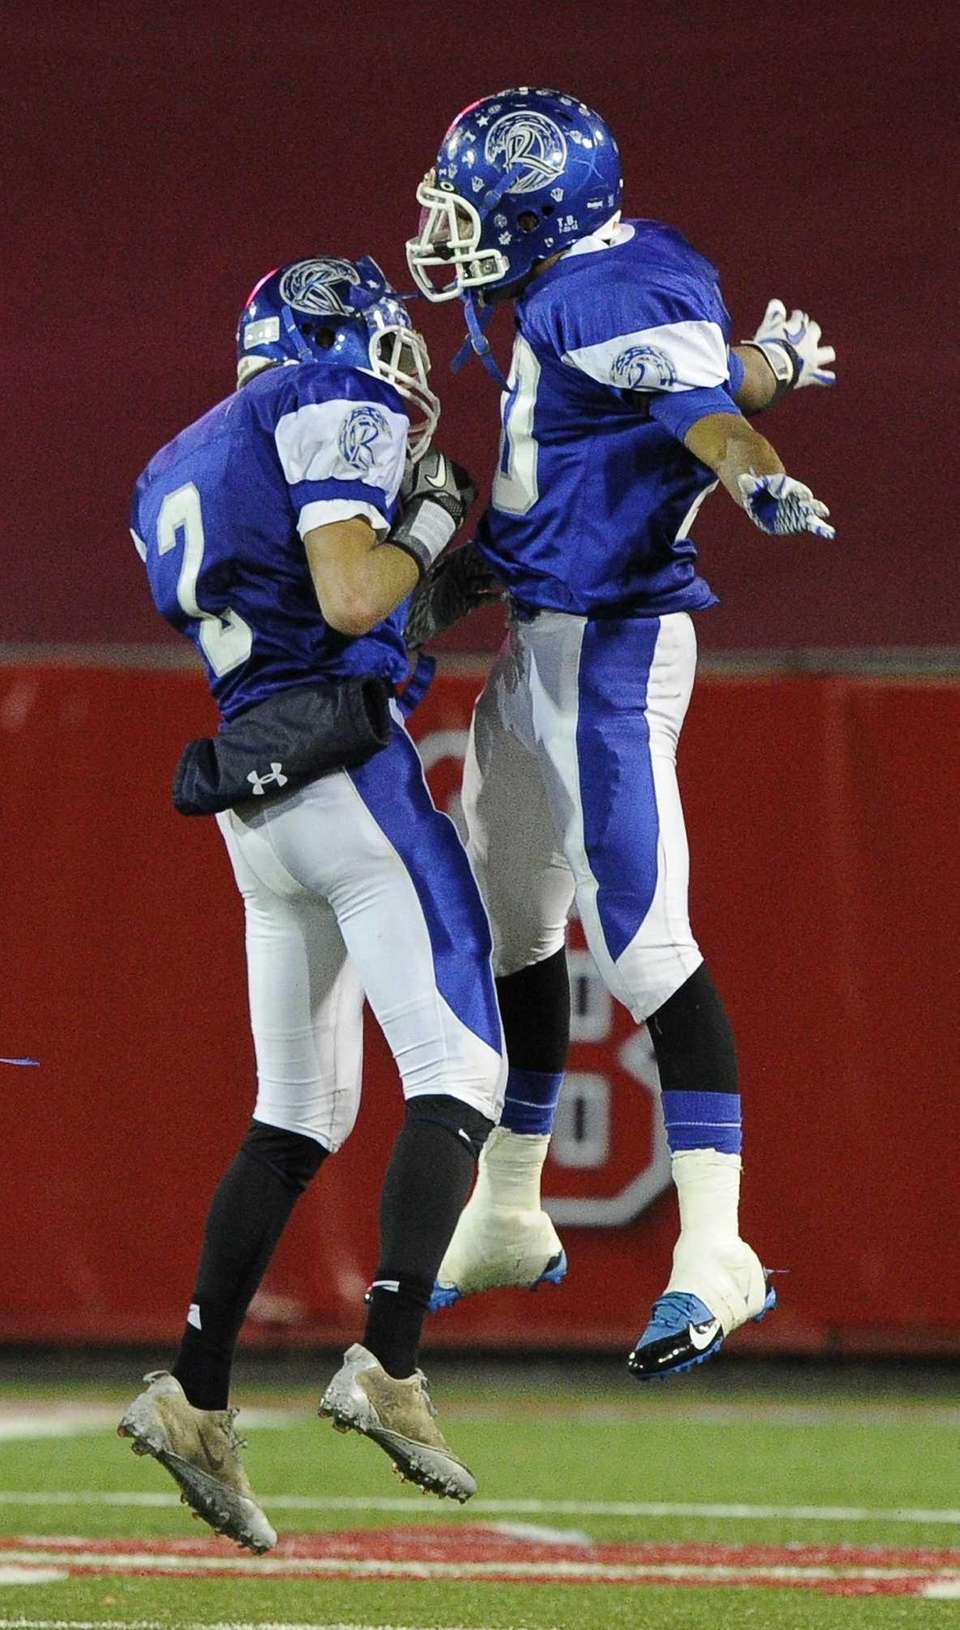 Riverhead's Ryan Hubbard, left, celebrates his interception run